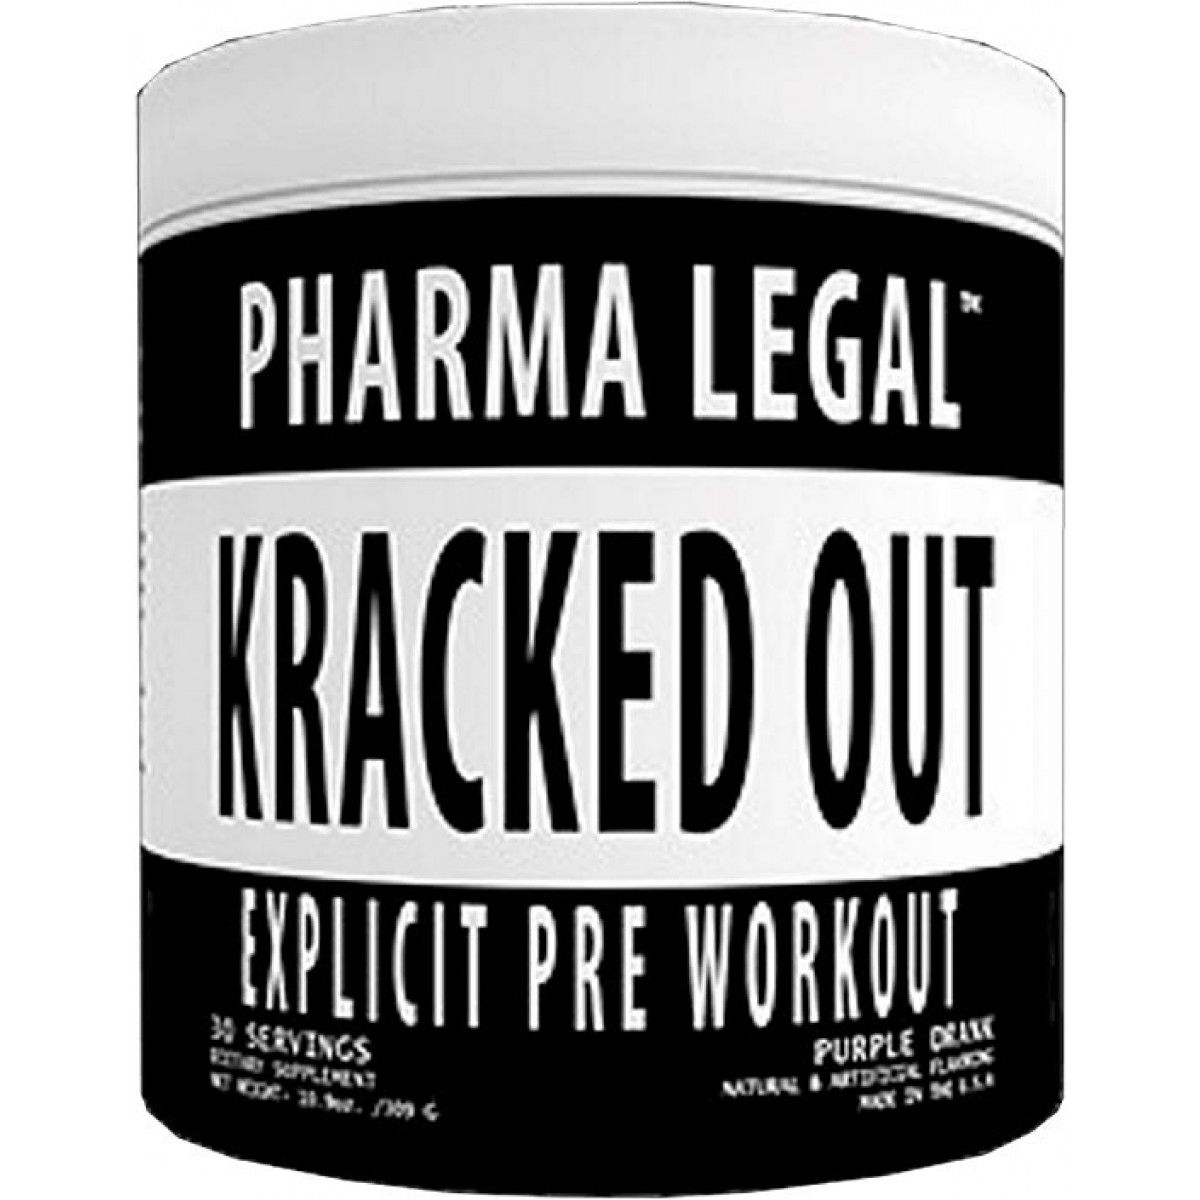 Kracked Out (30Doses) - Pharma Legal